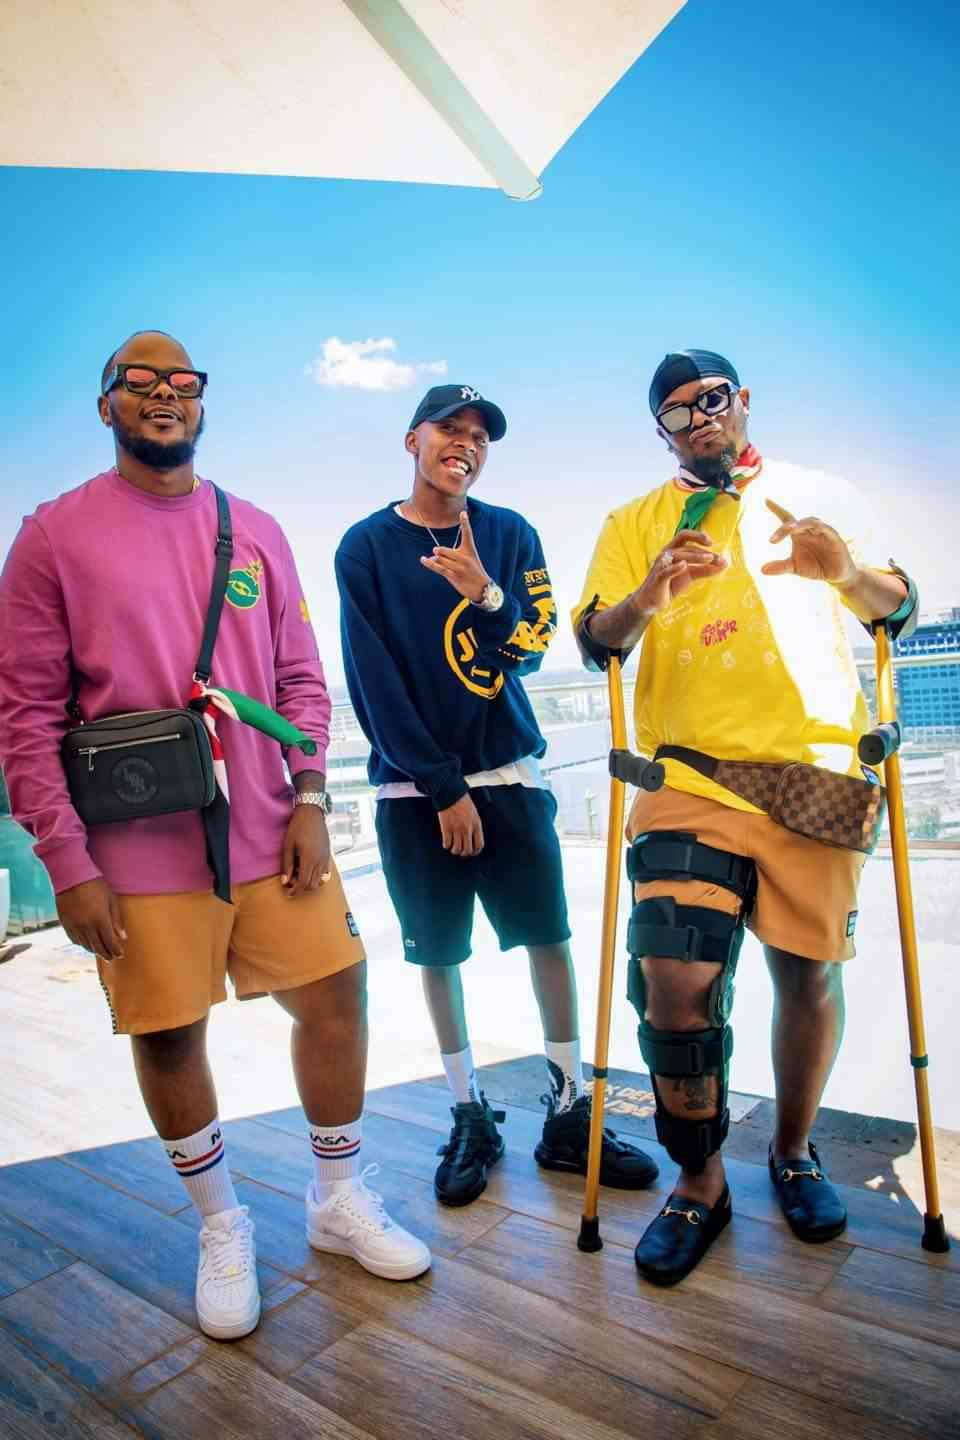 Vigro Deep To Feature On The Next Episode of The Amapiano Balcony Series